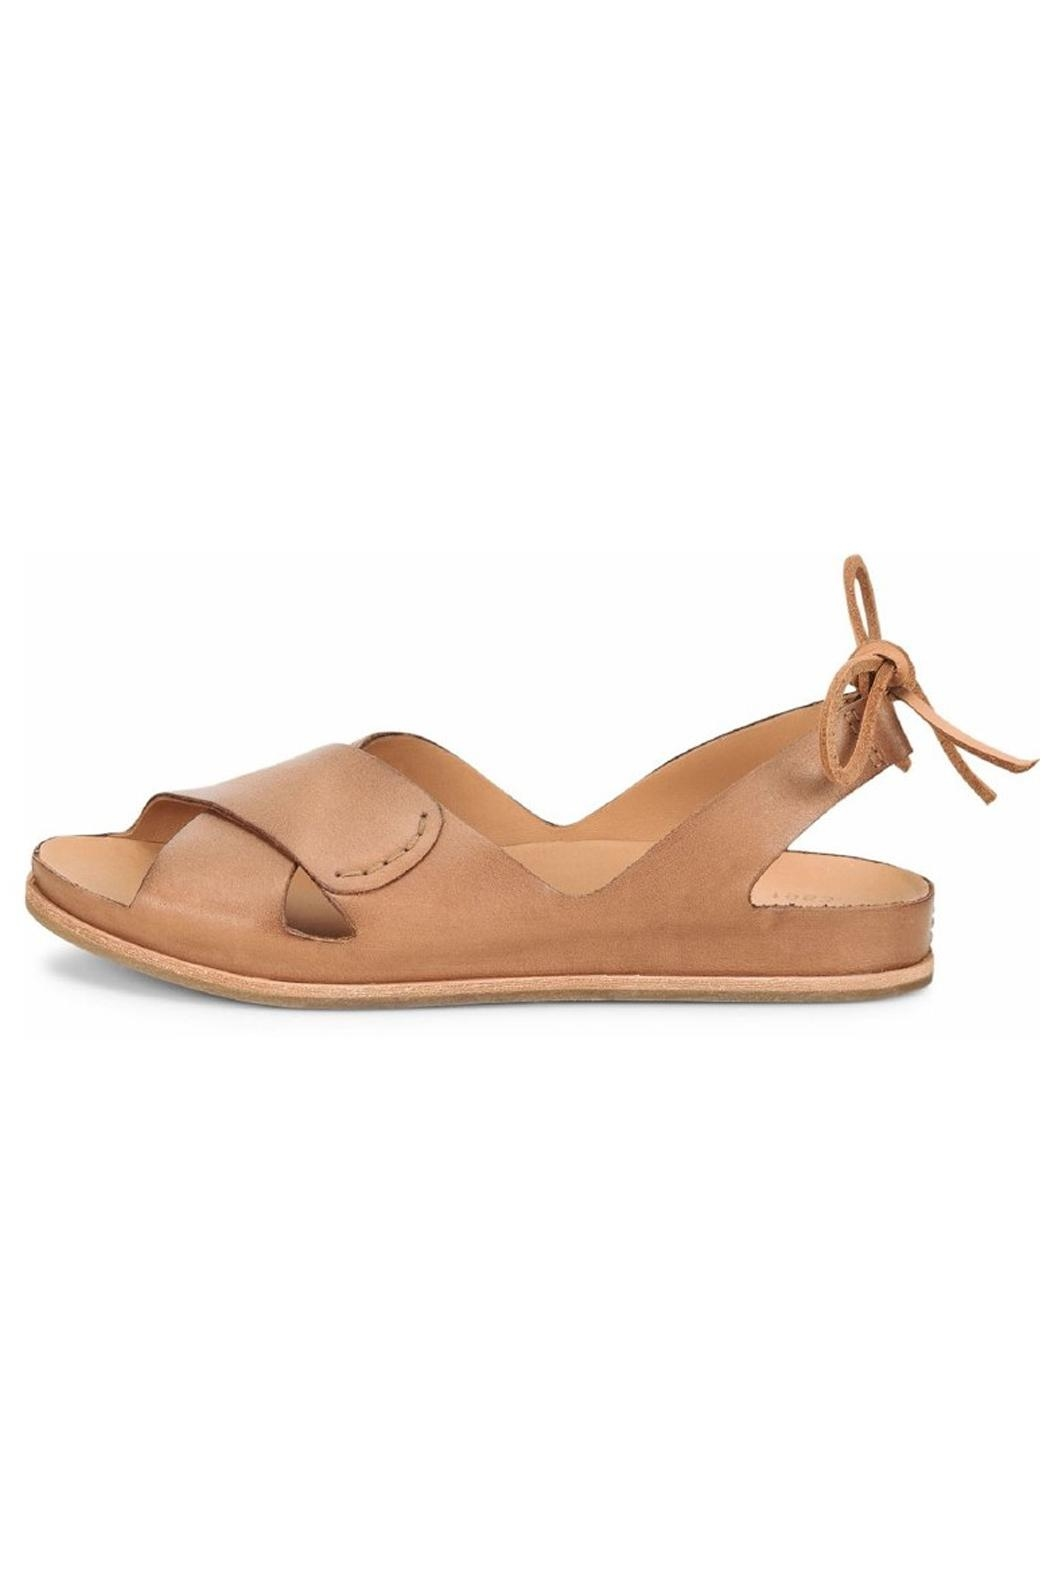 Kork Ease Leather Tie Sandals - Main Image